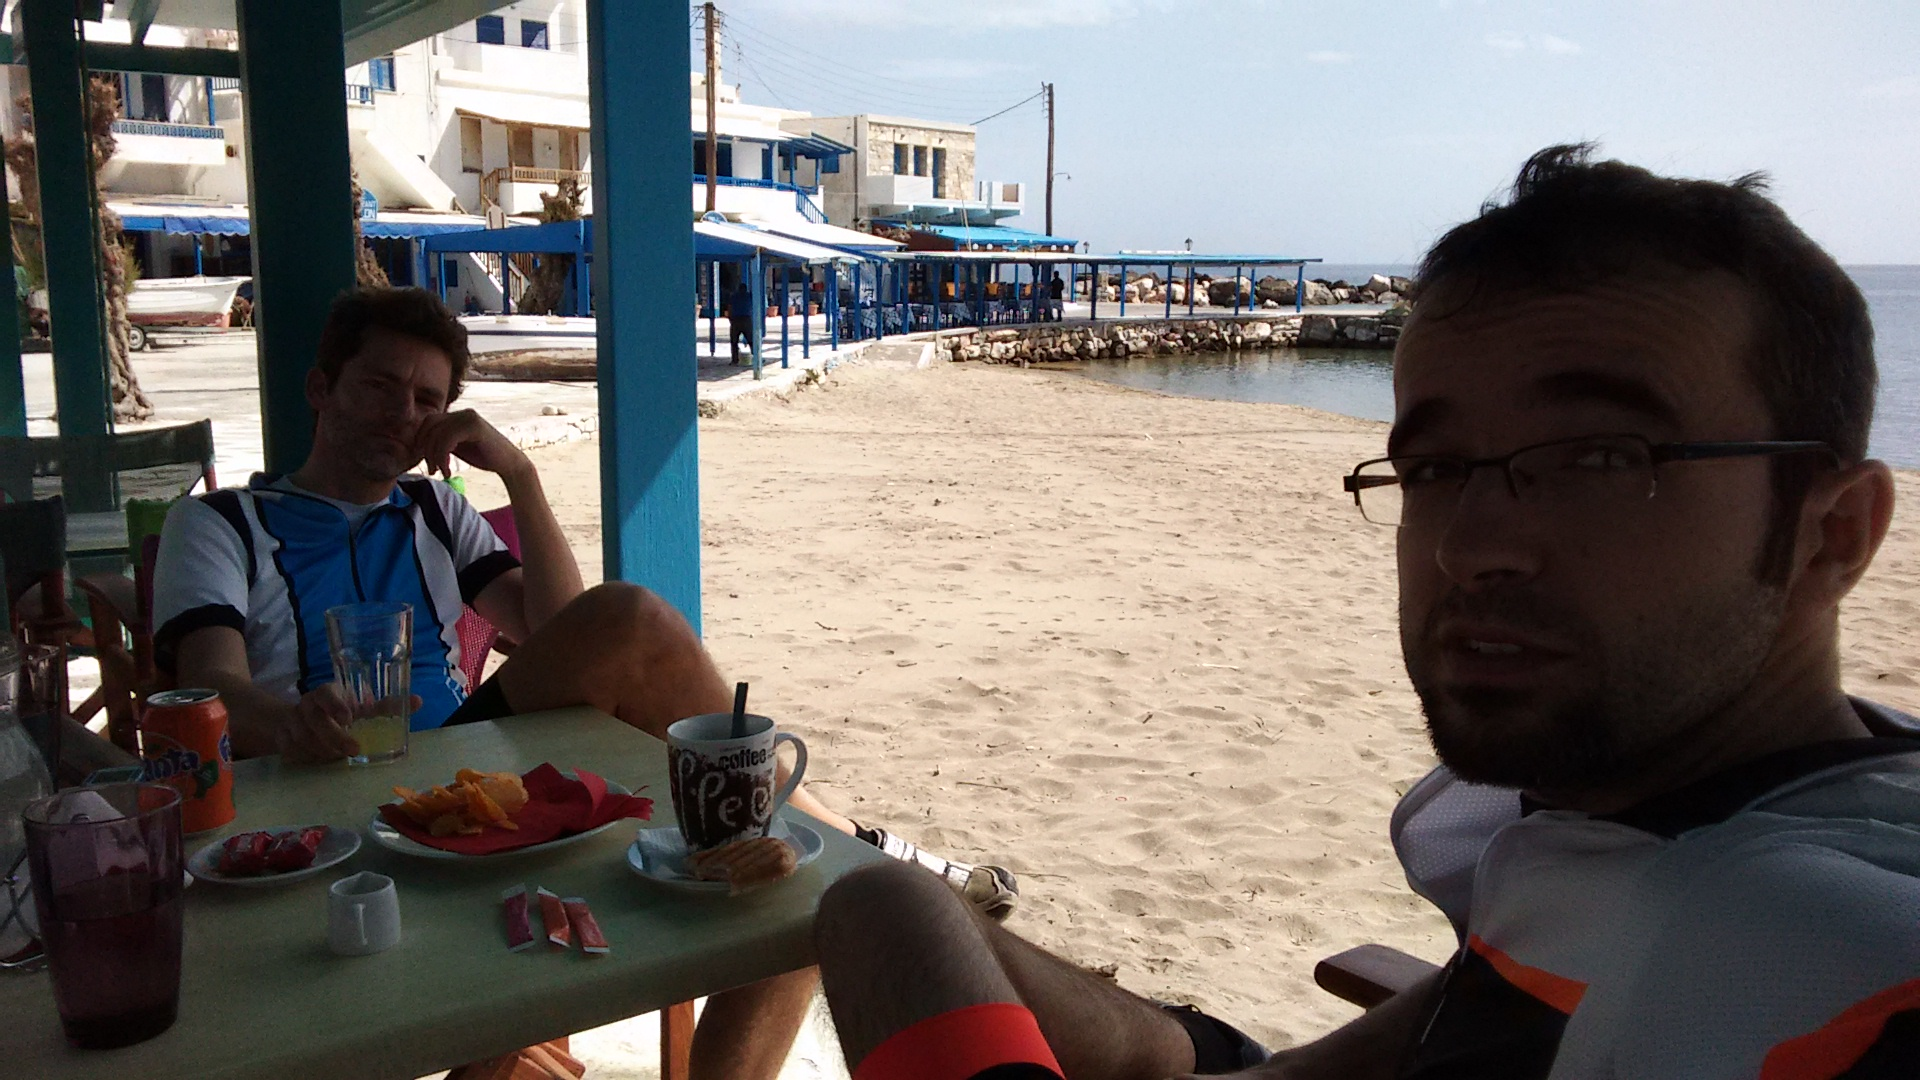 Coffee break at Apollonas, sitting by the beach